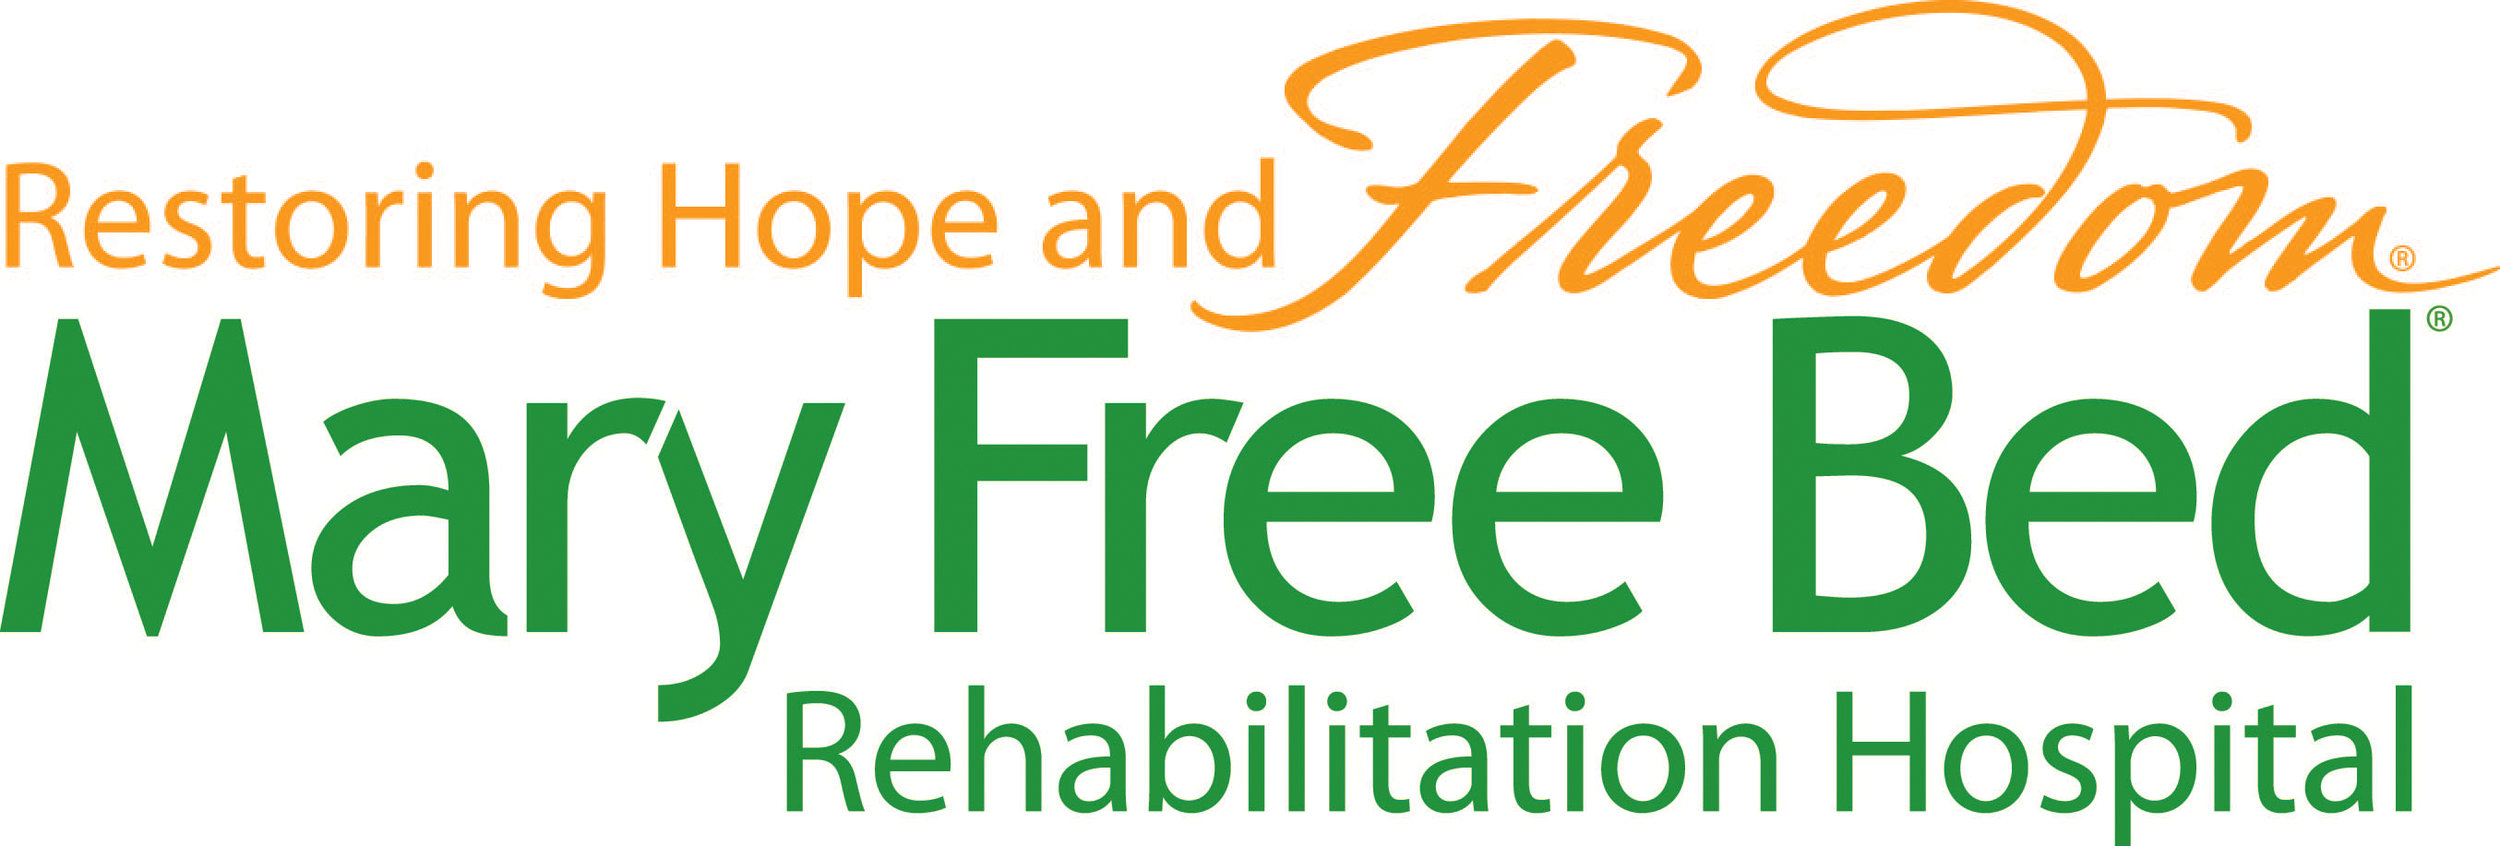 mary_free_bed_logo.jpg